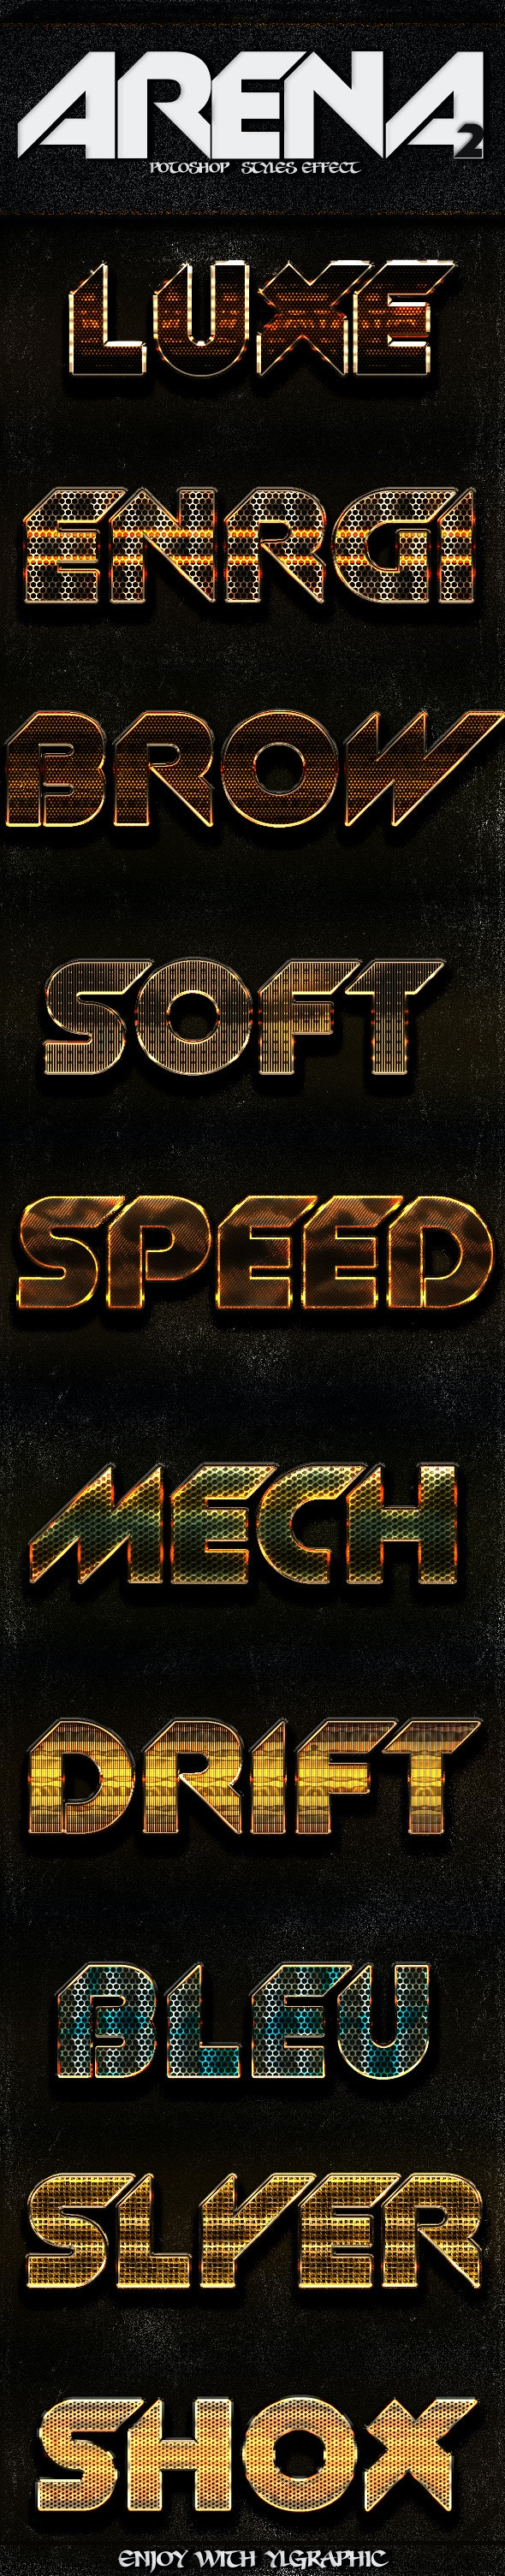 ARENA 2 Photoshop Layer Styles  - Text Effects Styles